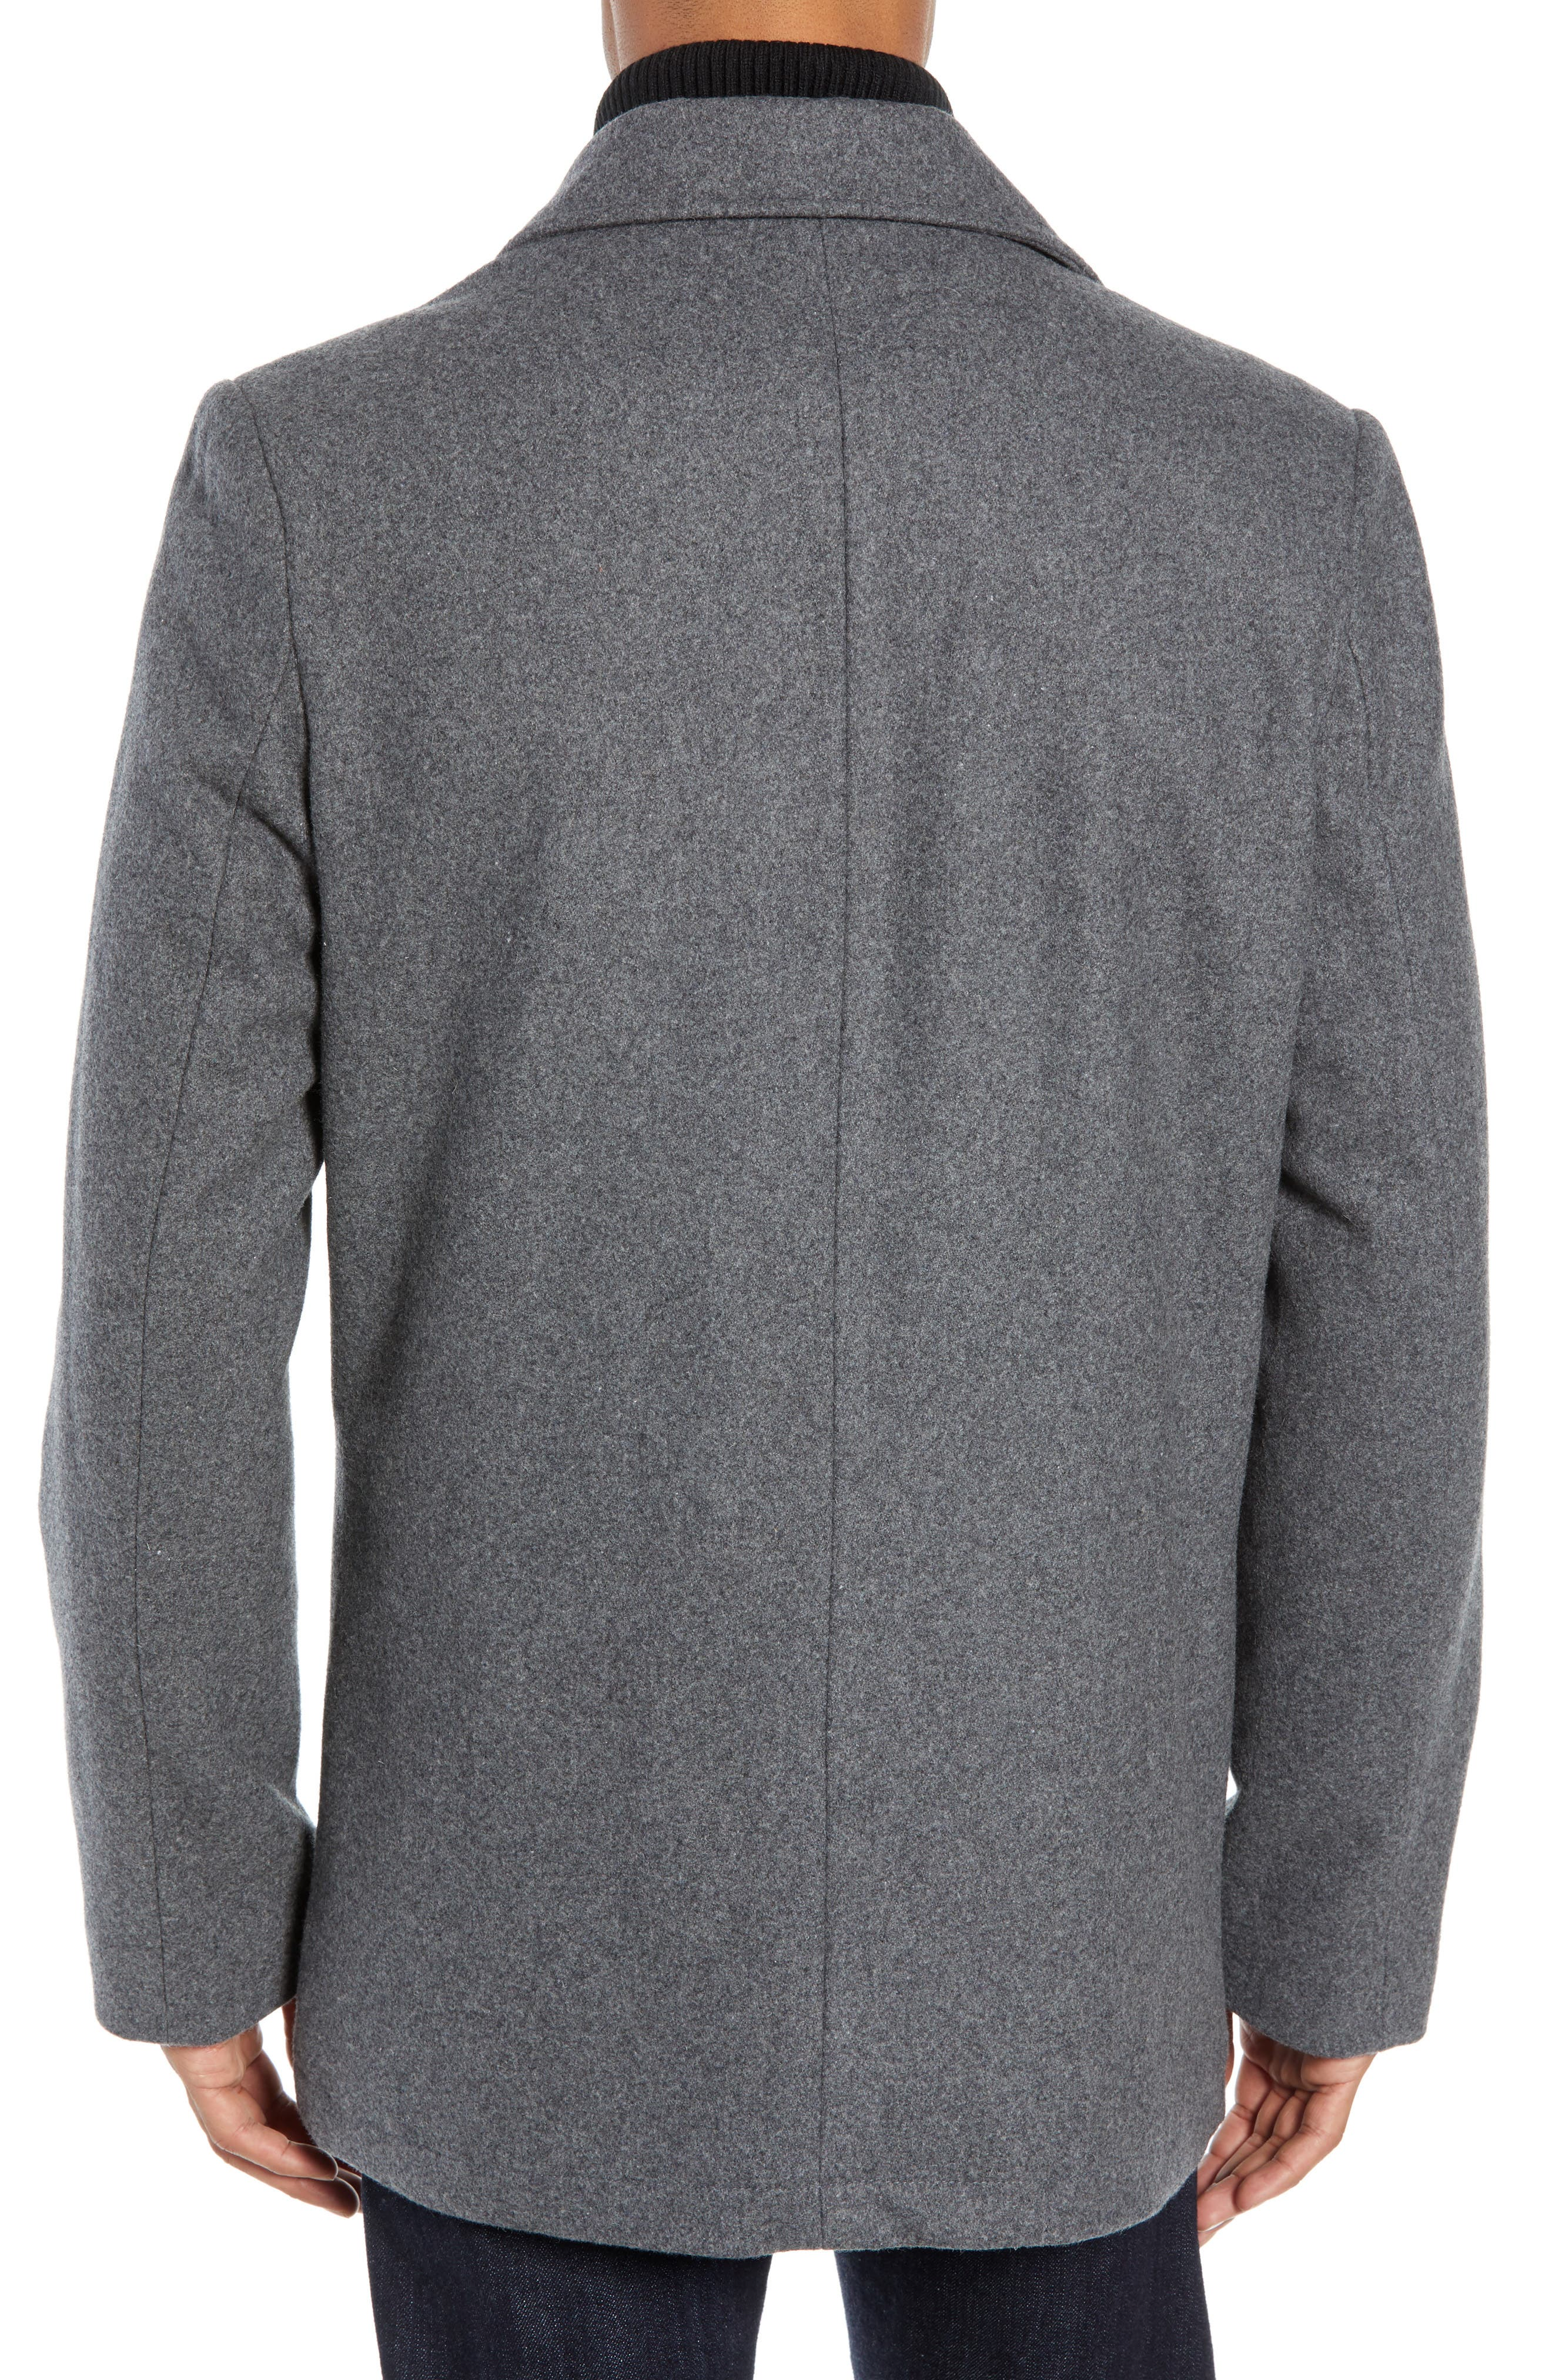 VINCE CAMUTO, Dock Peacoat, Alternate thumbnail 2, color, HEATHER GREY